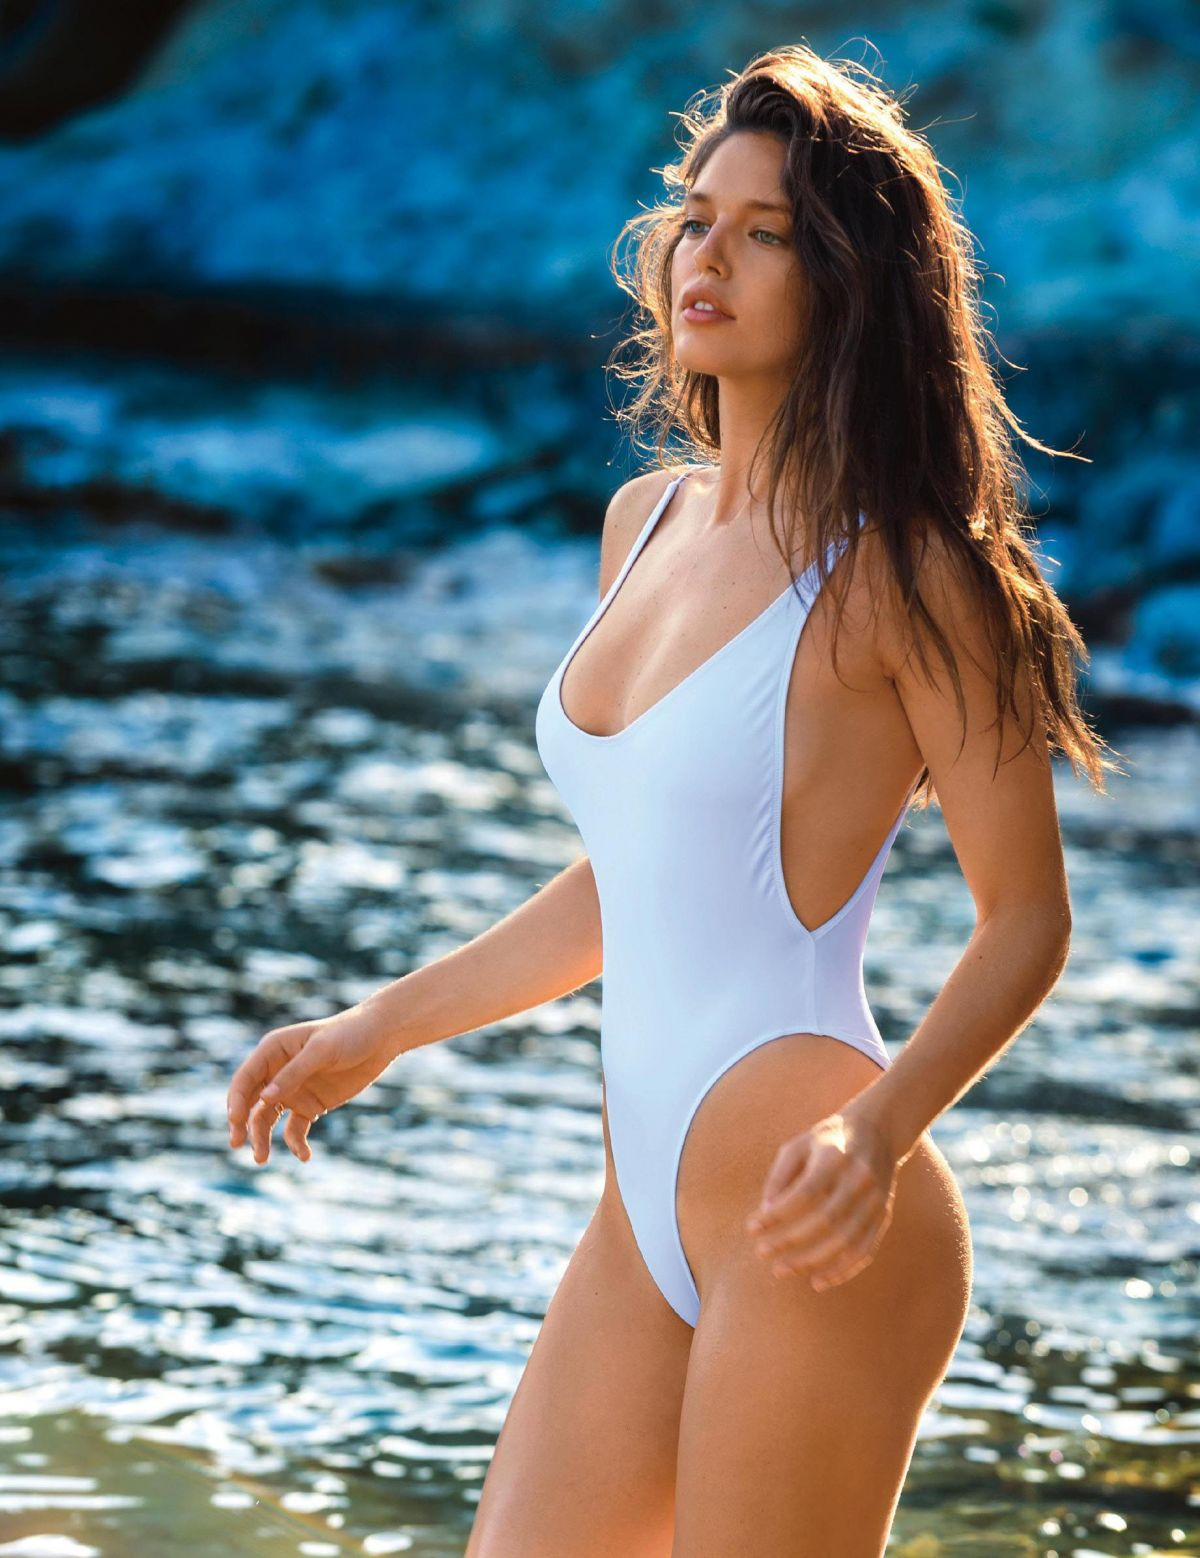 EMILY DIDONATO in Maxim Magazine, August 2015 Issue